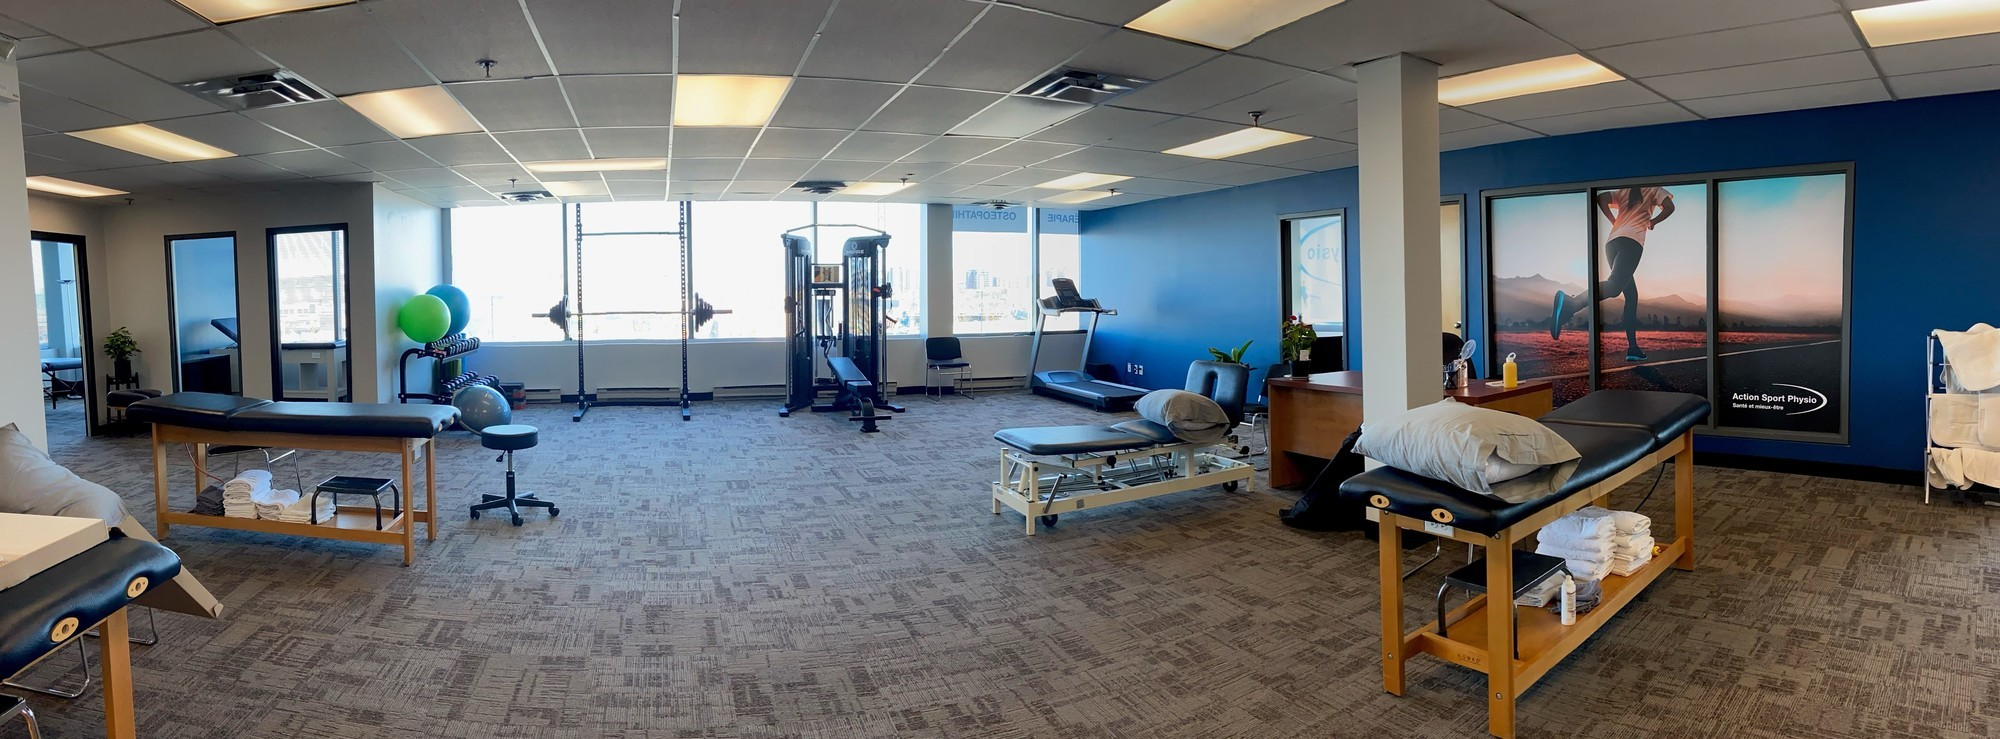 Picture of the LaSalle Action Sport Physio Clinic.